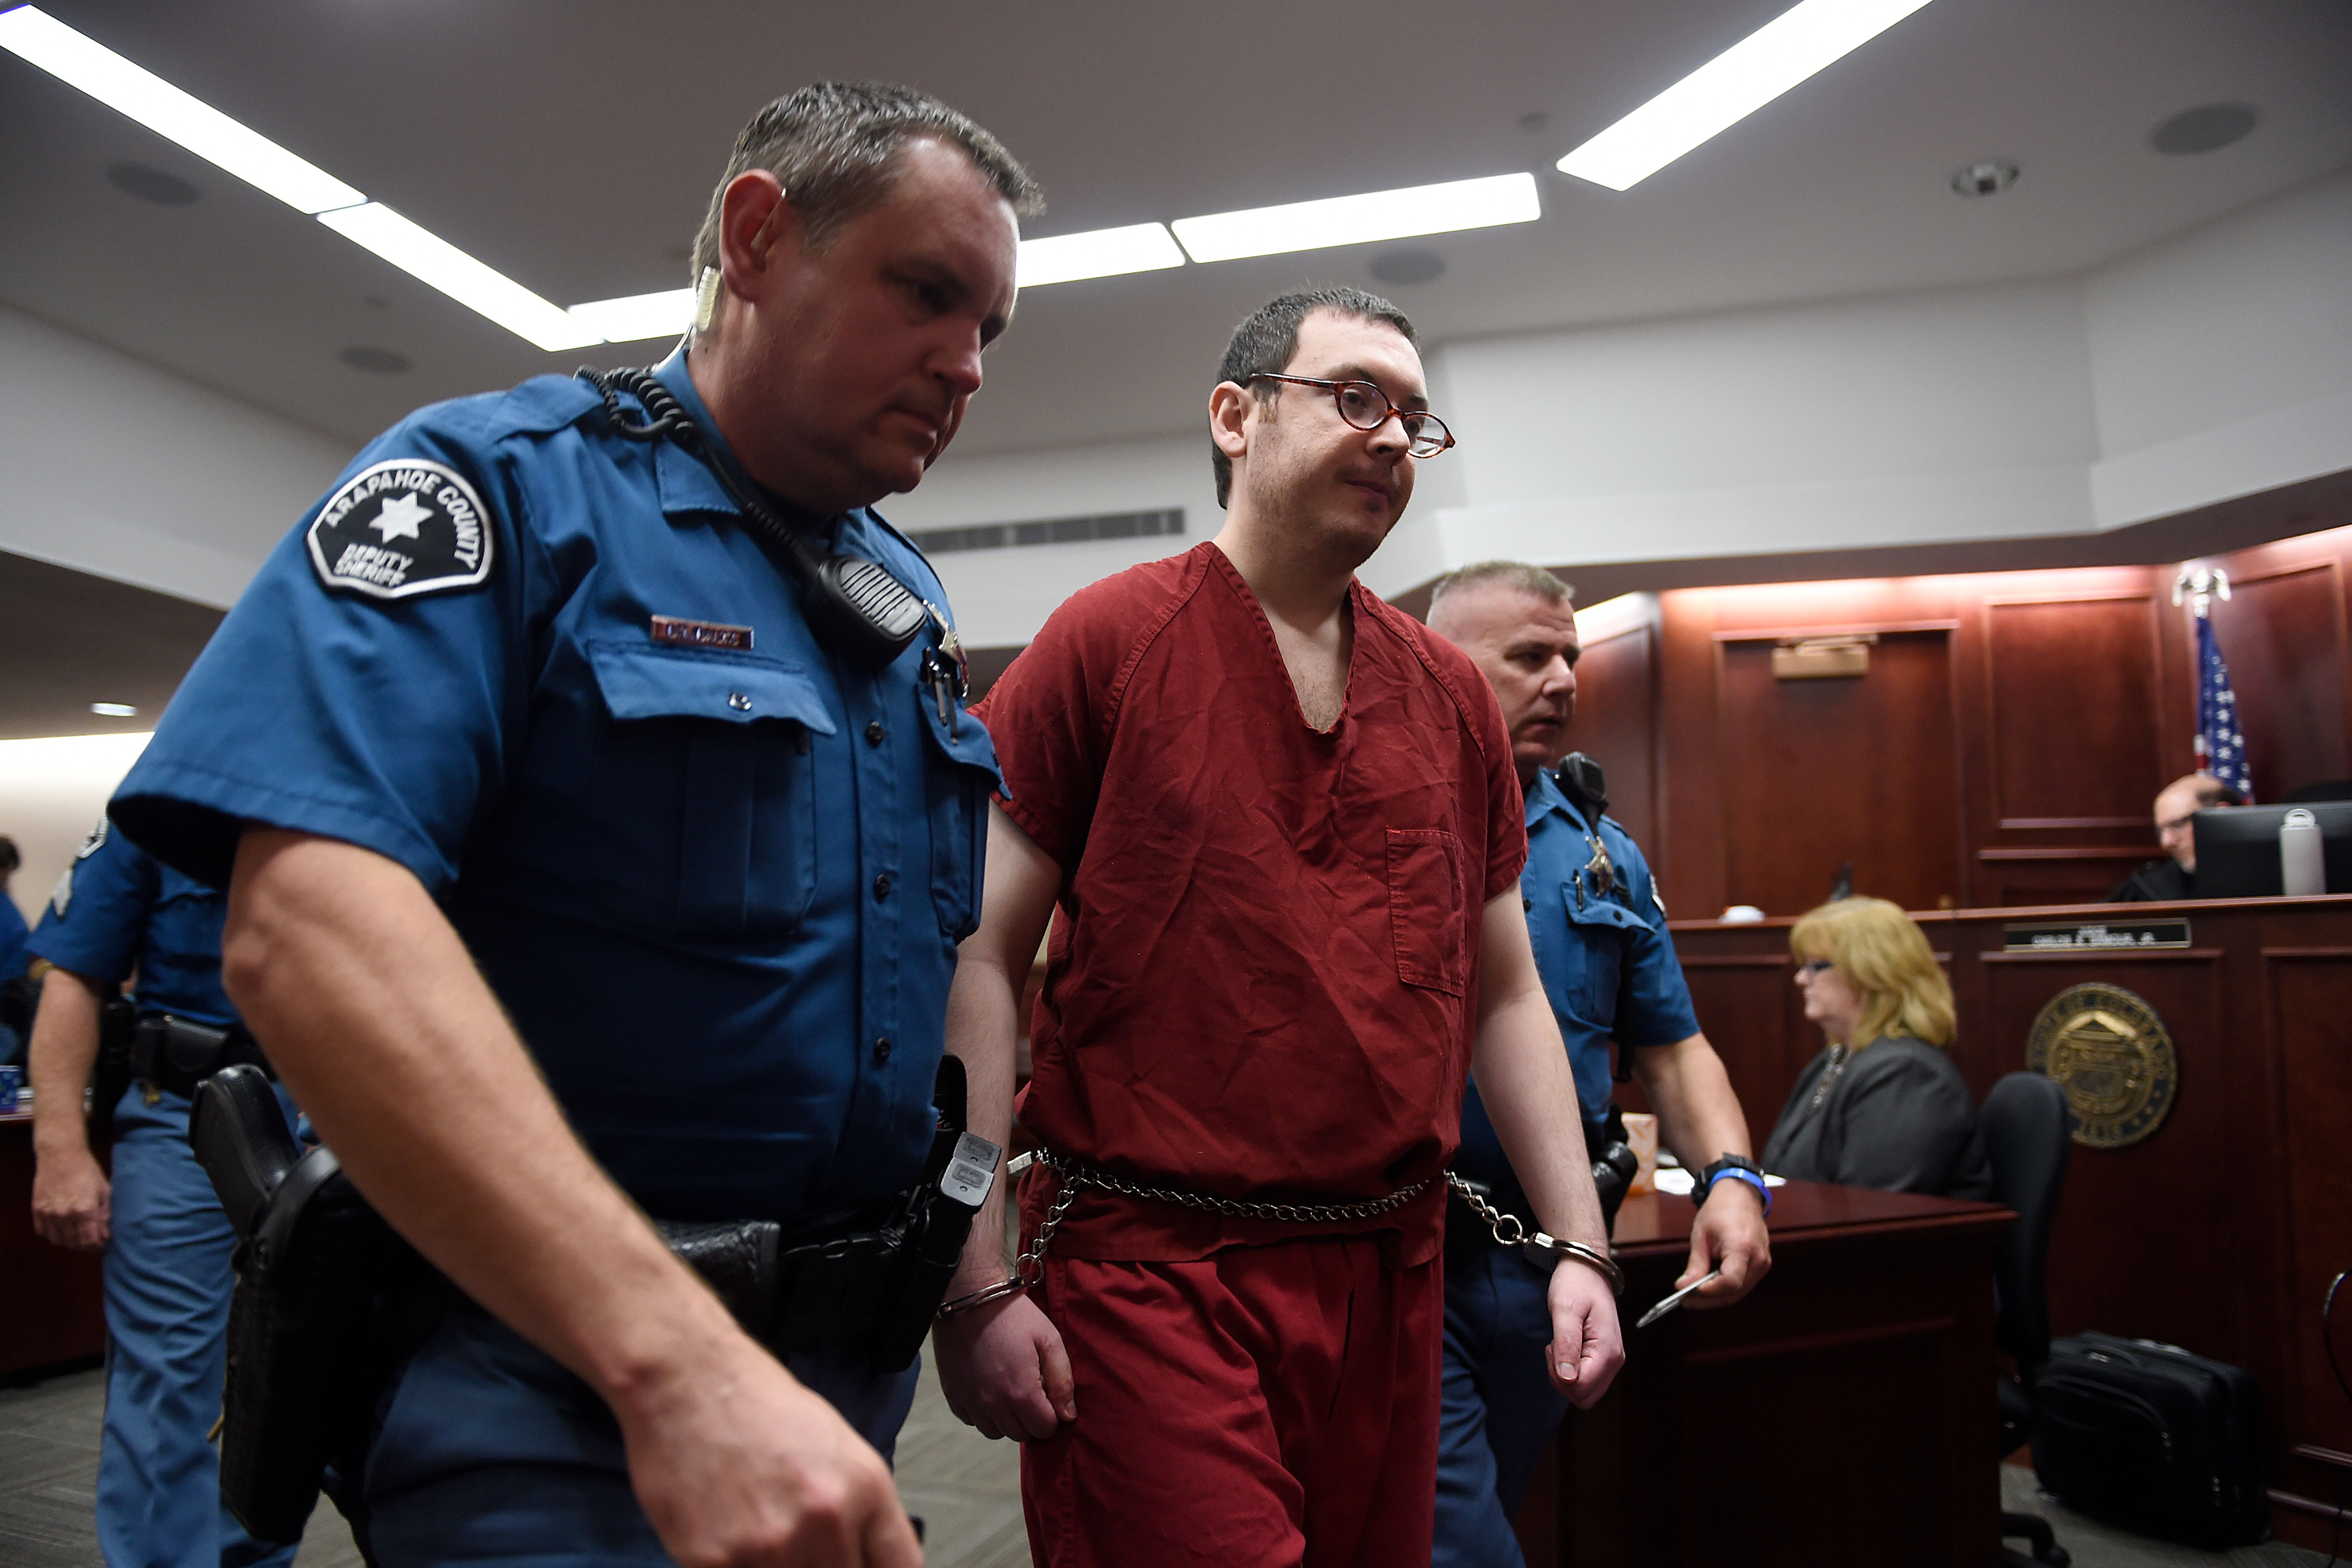 <p>Colorado theater shooter James Holmes is led out of the courtroom after sentencing, Aug. 26, 2015 in Centennial, Colo. Holmes was sentenced to life in prison without parole by Judge Carlos Samour Jr.</p>